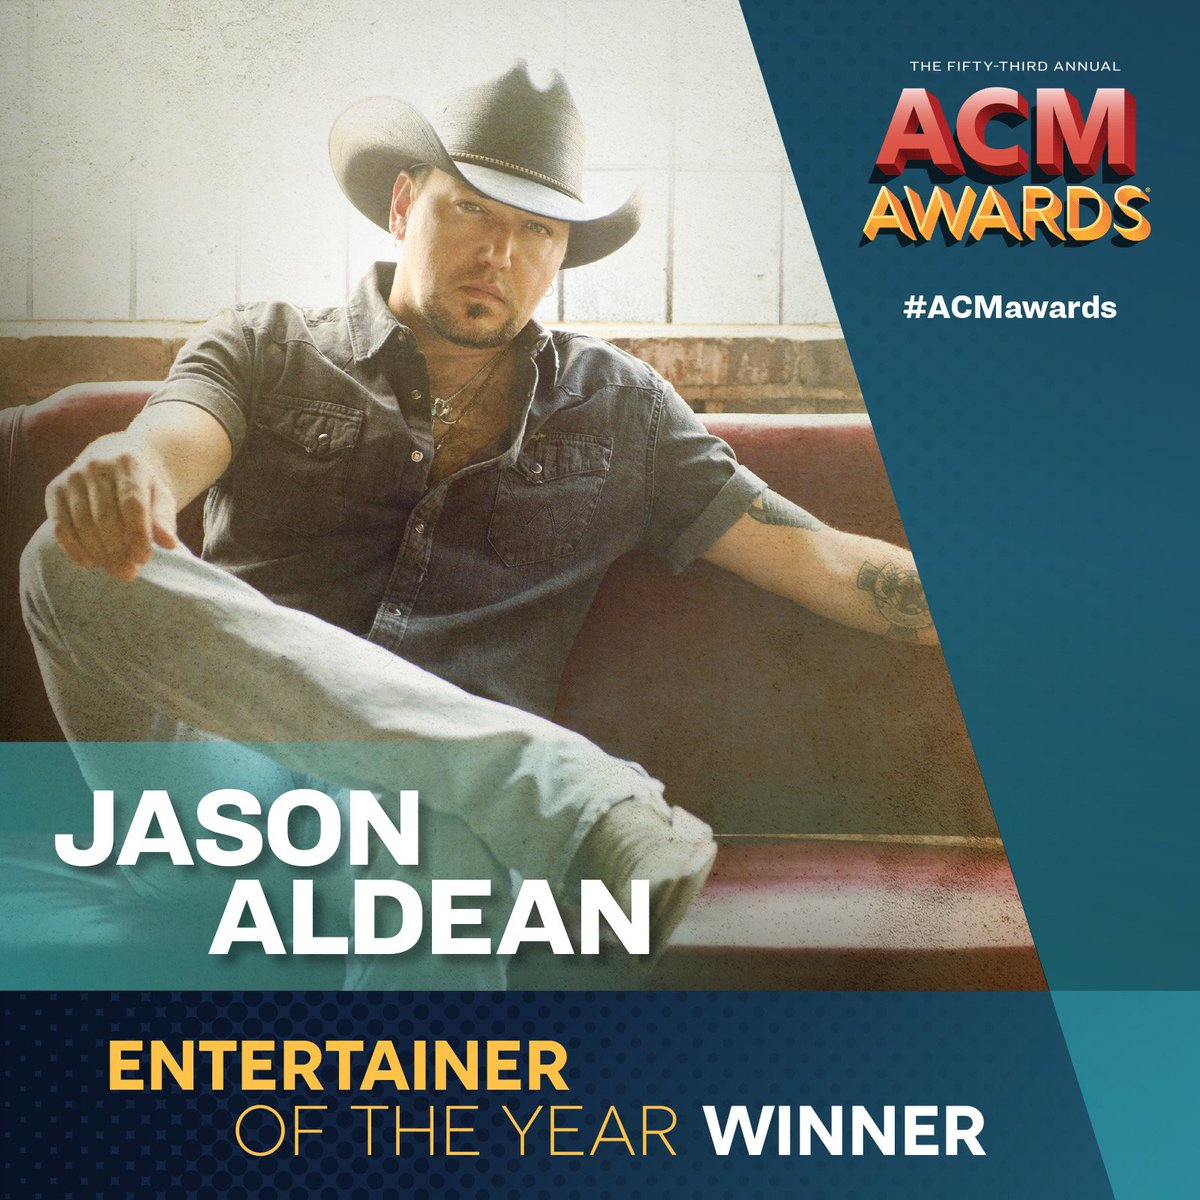 .@Jason_Aldean is the much deserved #ACMawards Entertainer of the Year! #VegasStrong